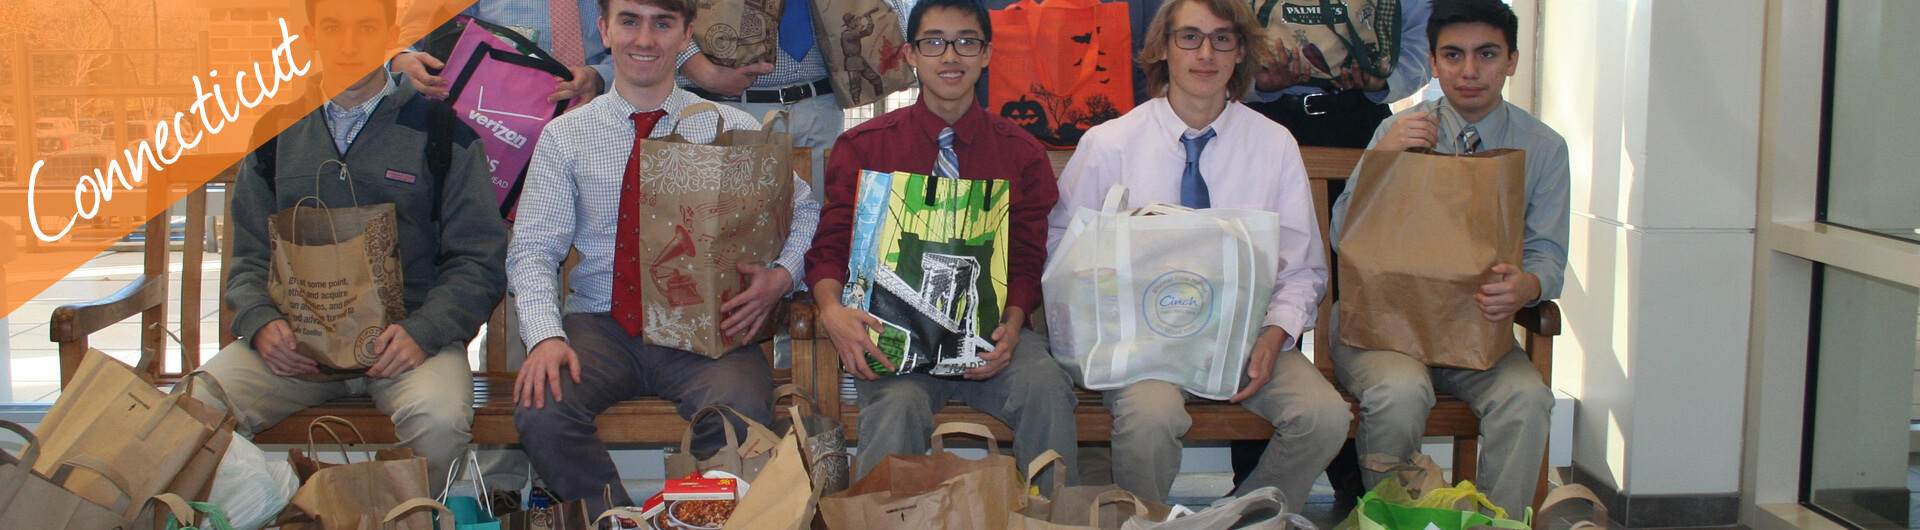 Connecticut Car Donation Banner | Teenage Students holding Care Packages for the Needy